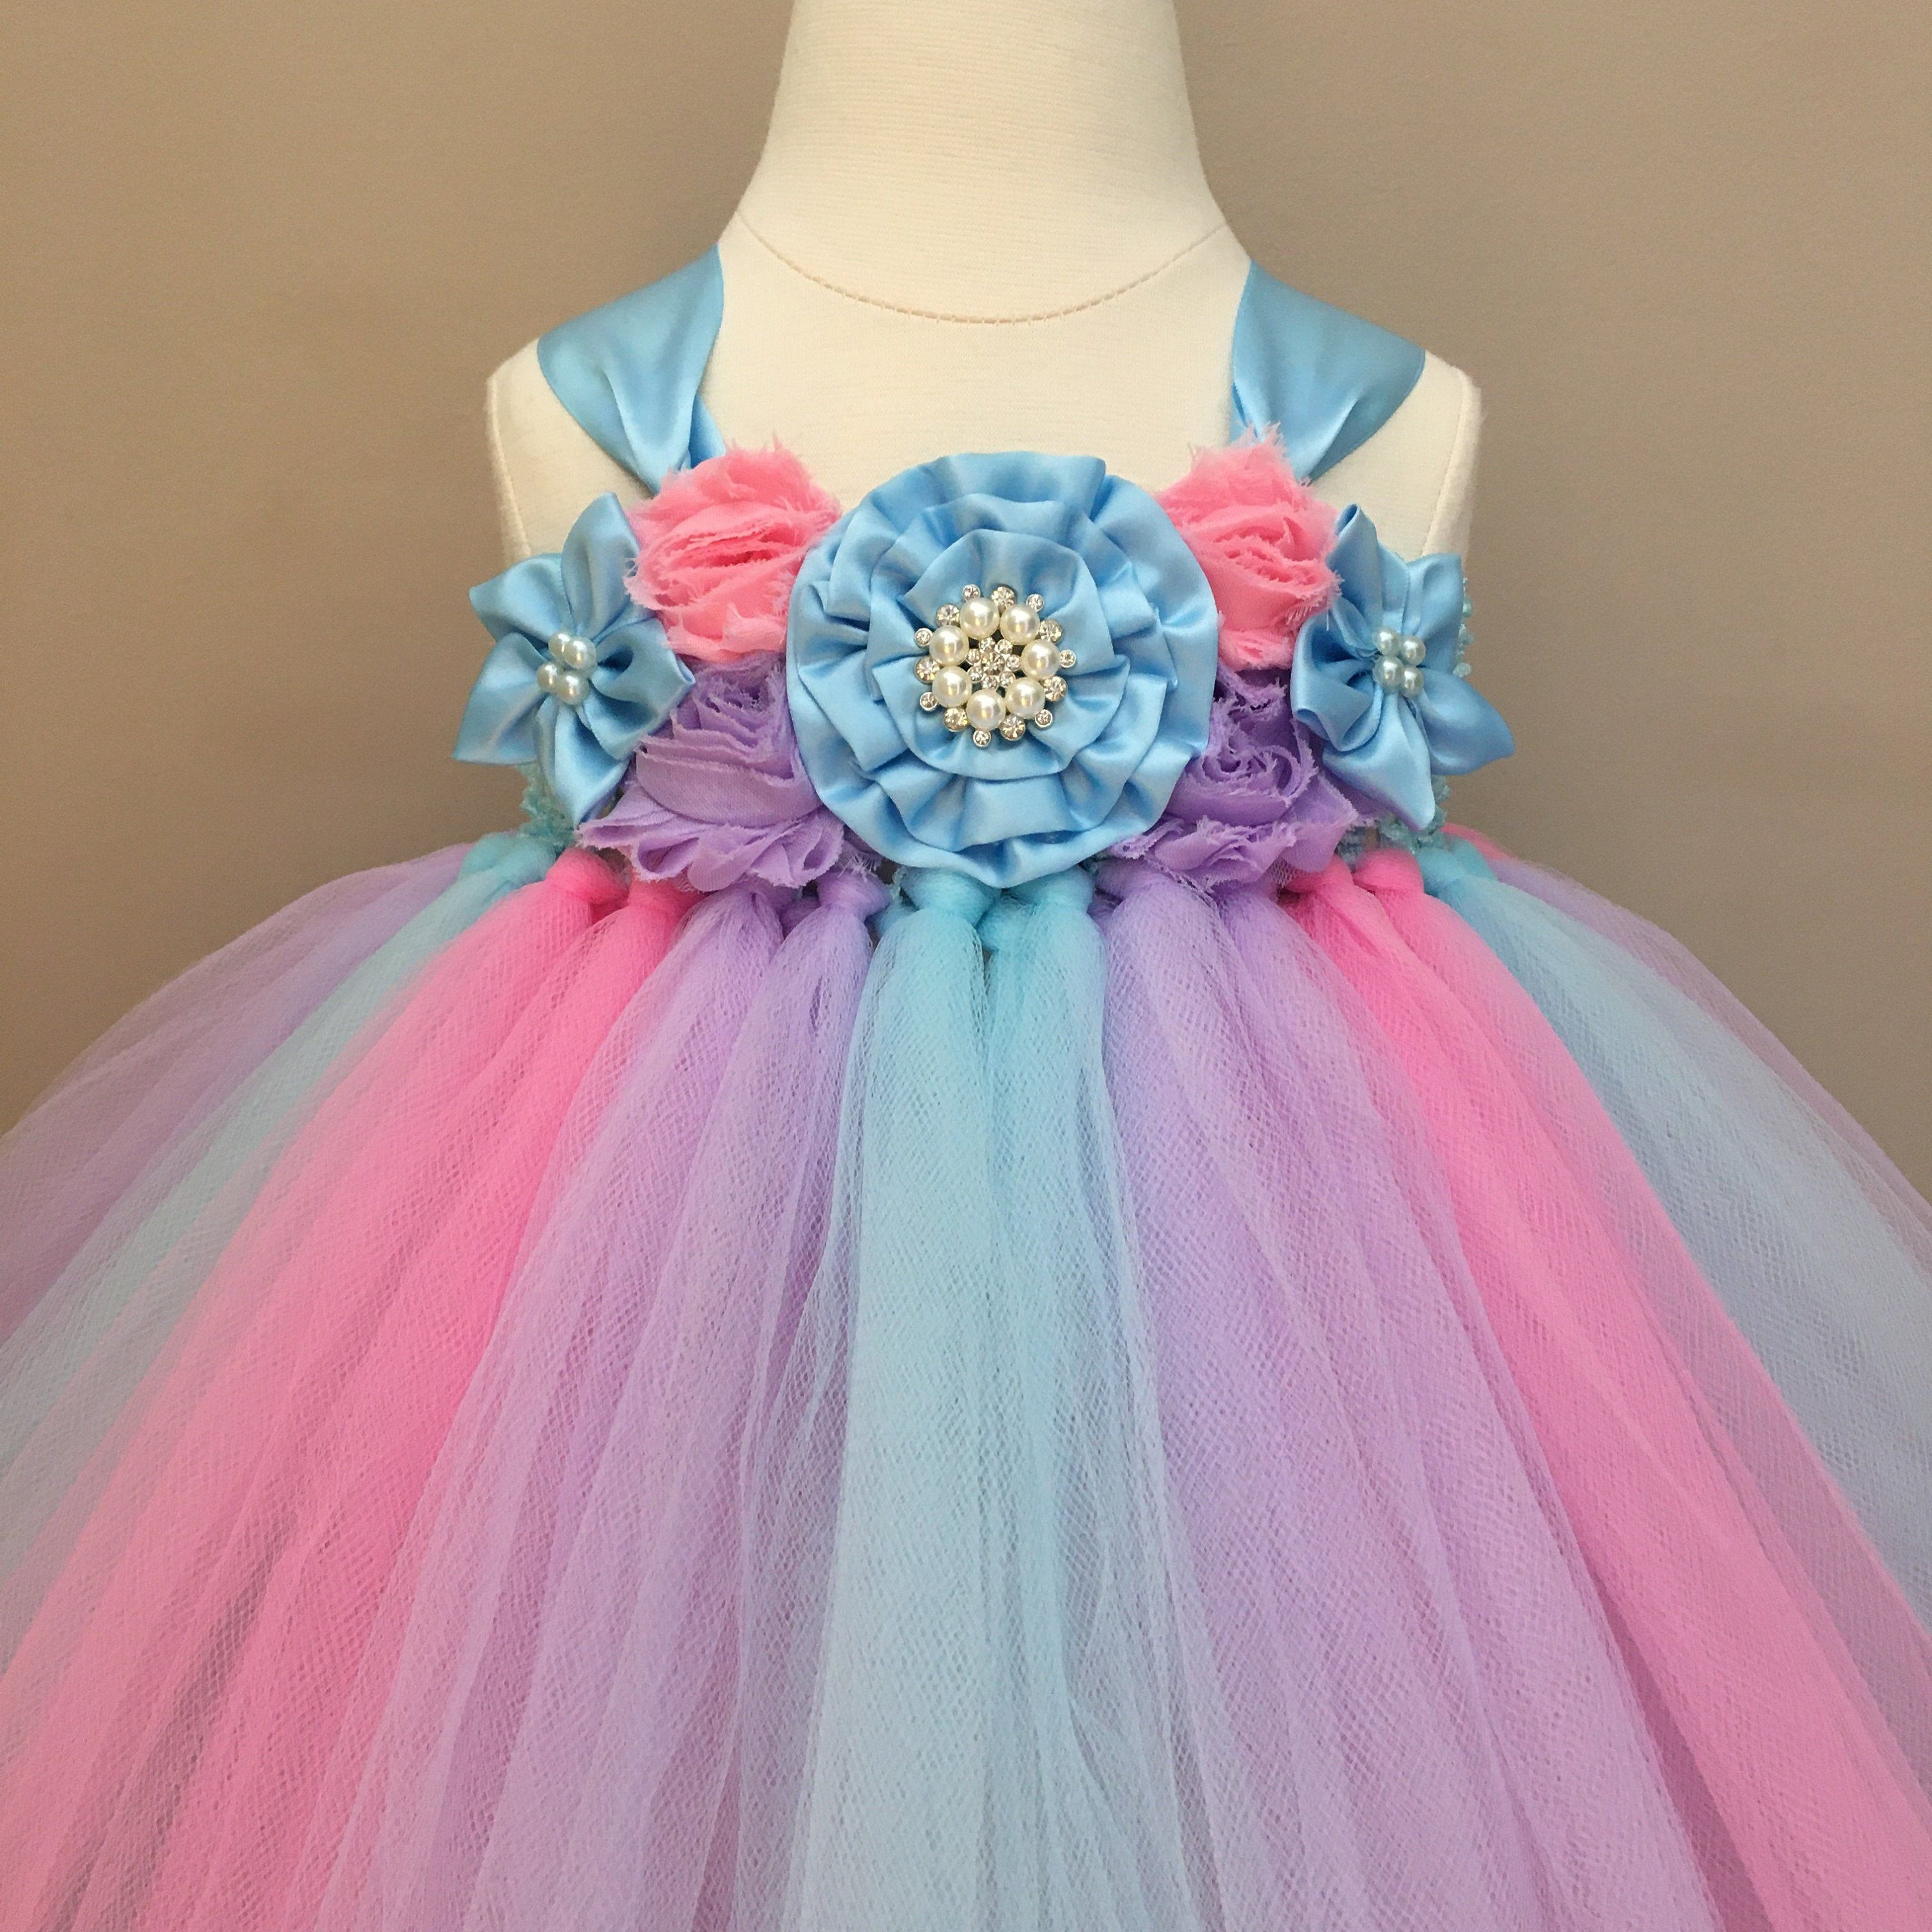 Unicorn Party Dress Unicorn Birthday Outfit First Birthday Dress 1 Year Old Mermaid Gi Toddler Flower Girl Dresses Birthday Outfit Flower Girl Dresses Tulle